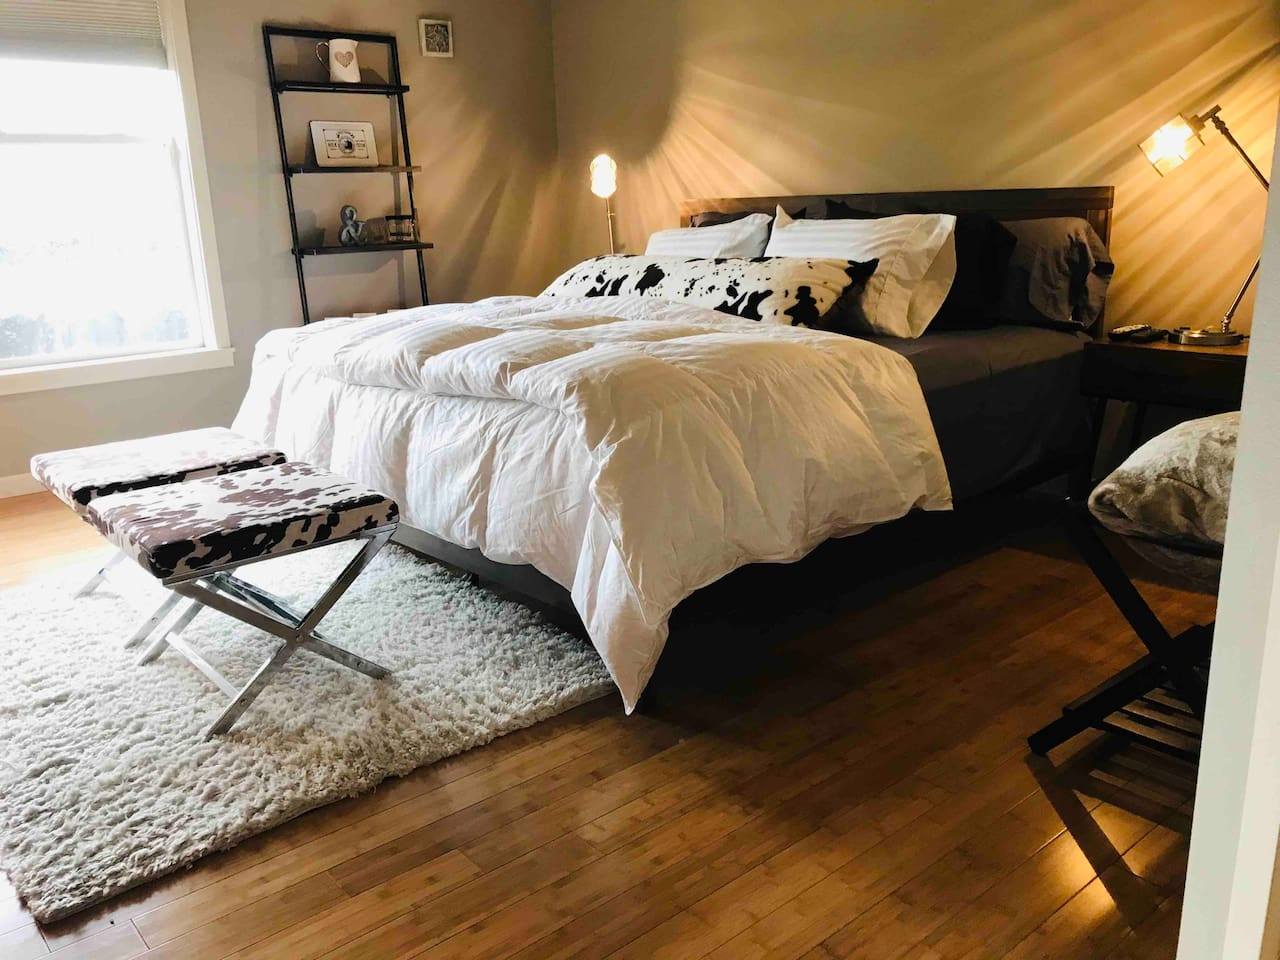 Large master bedroom with king size bed and goose-down duvet.   High thread count sheets and pillow.  Includes TV and ensuite bathroom.